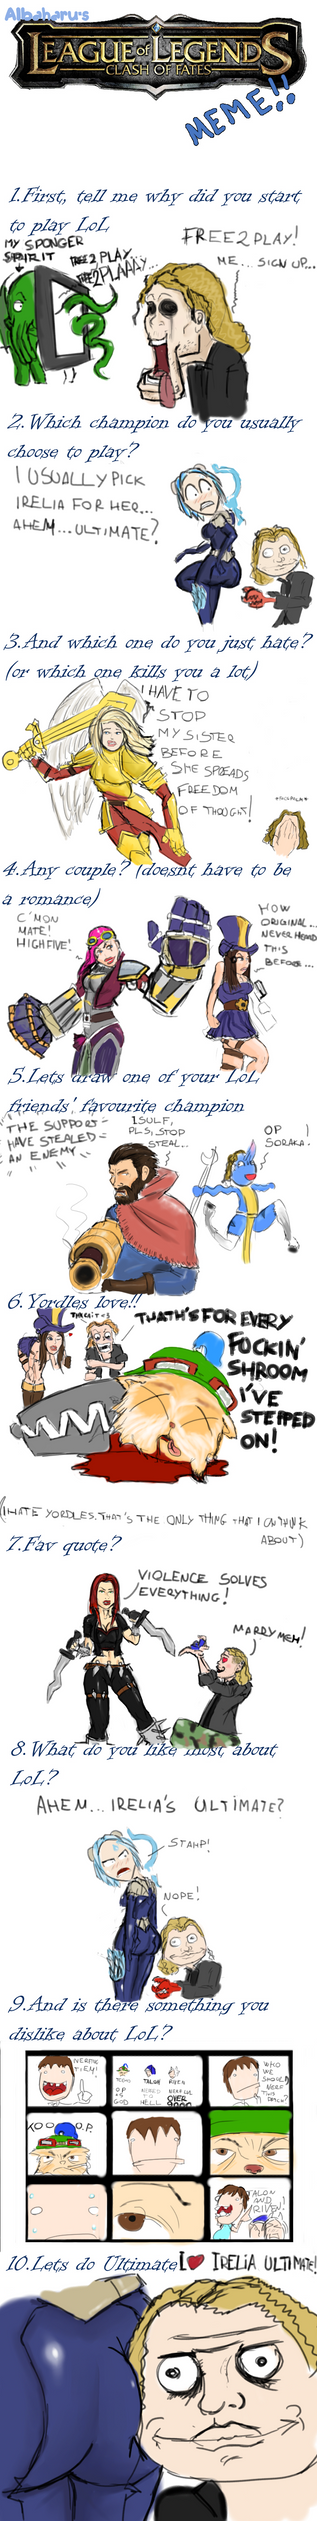 League Of Legends - Champion Meme by Isulf